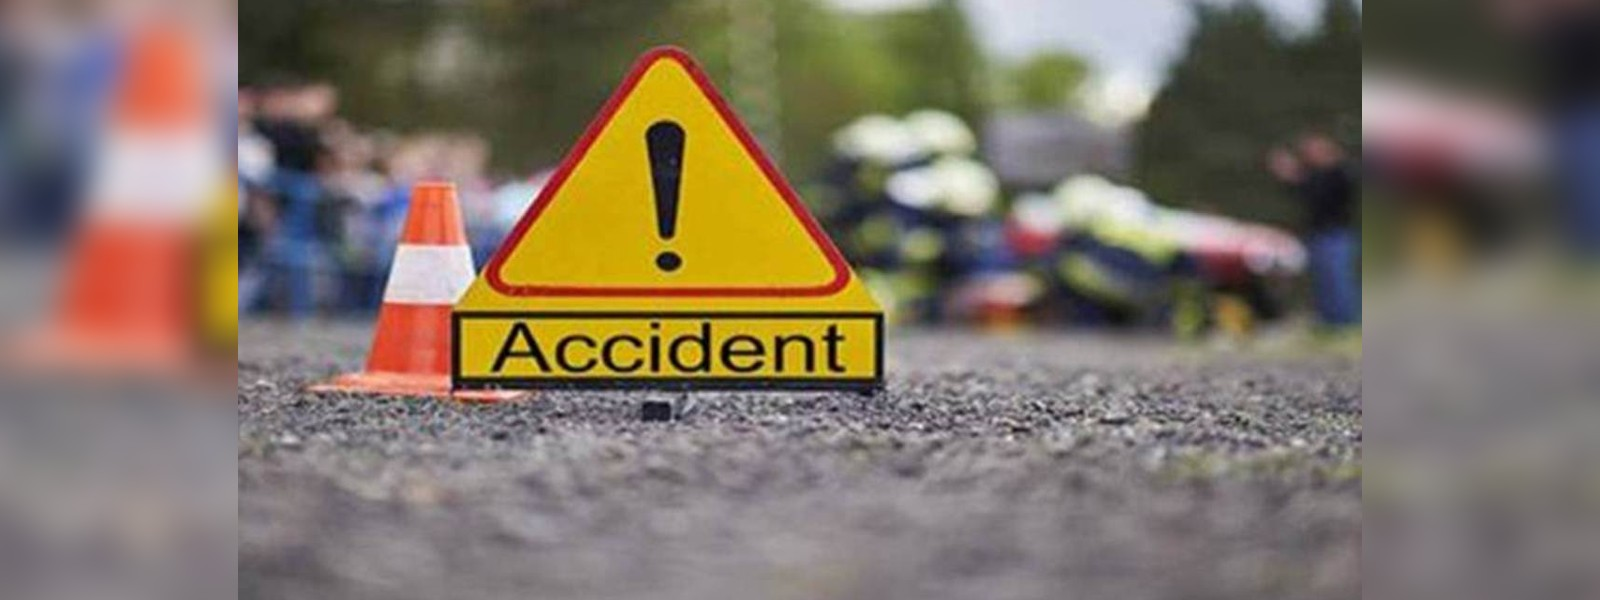 Army officer injured in accident